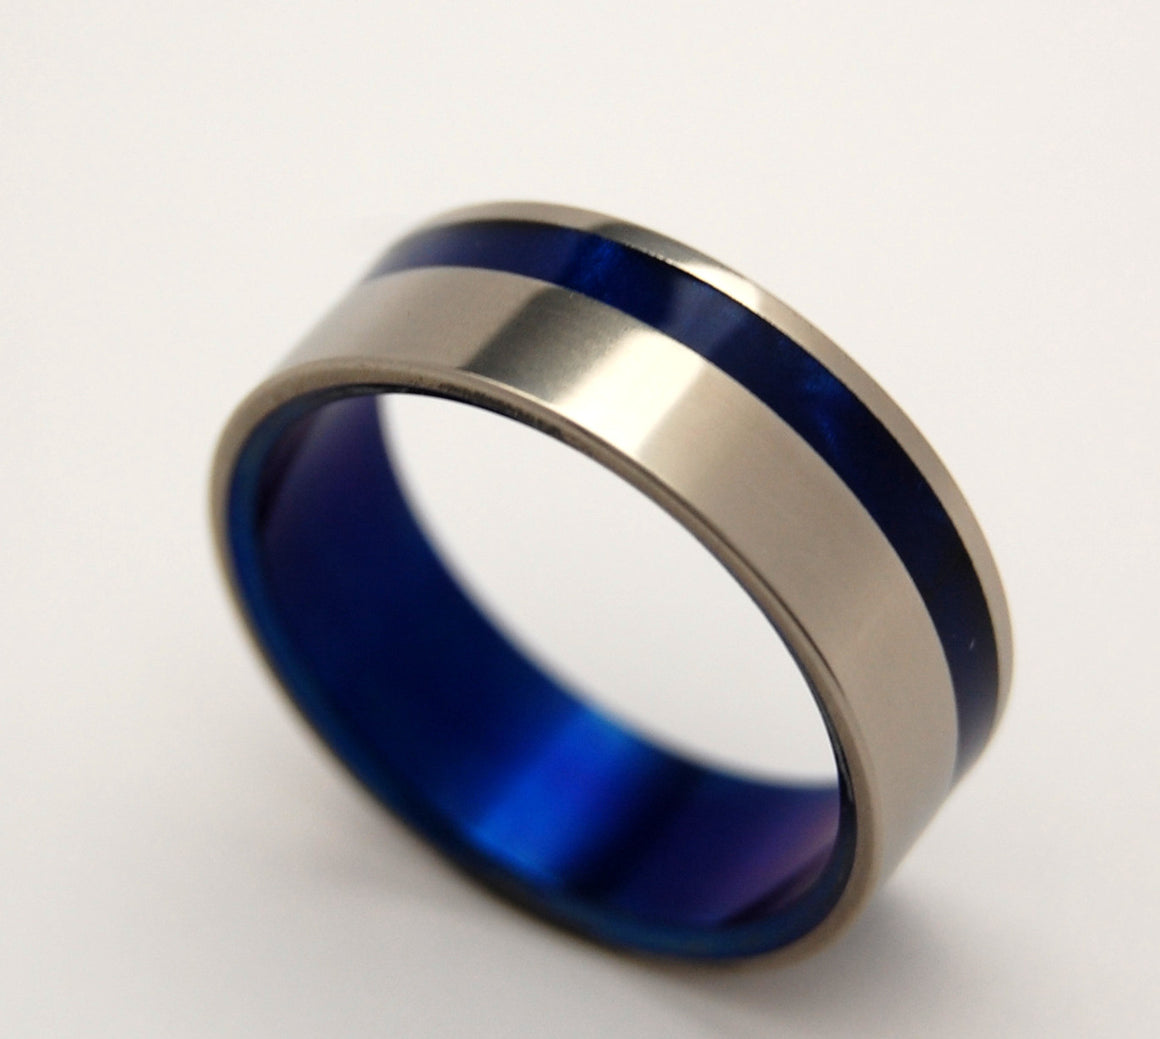 TO THE WINDS RESIGN | Blue Marbled Opalescent Resin & Titanium - Unique Wedding Rings - Minter and Richter Designs